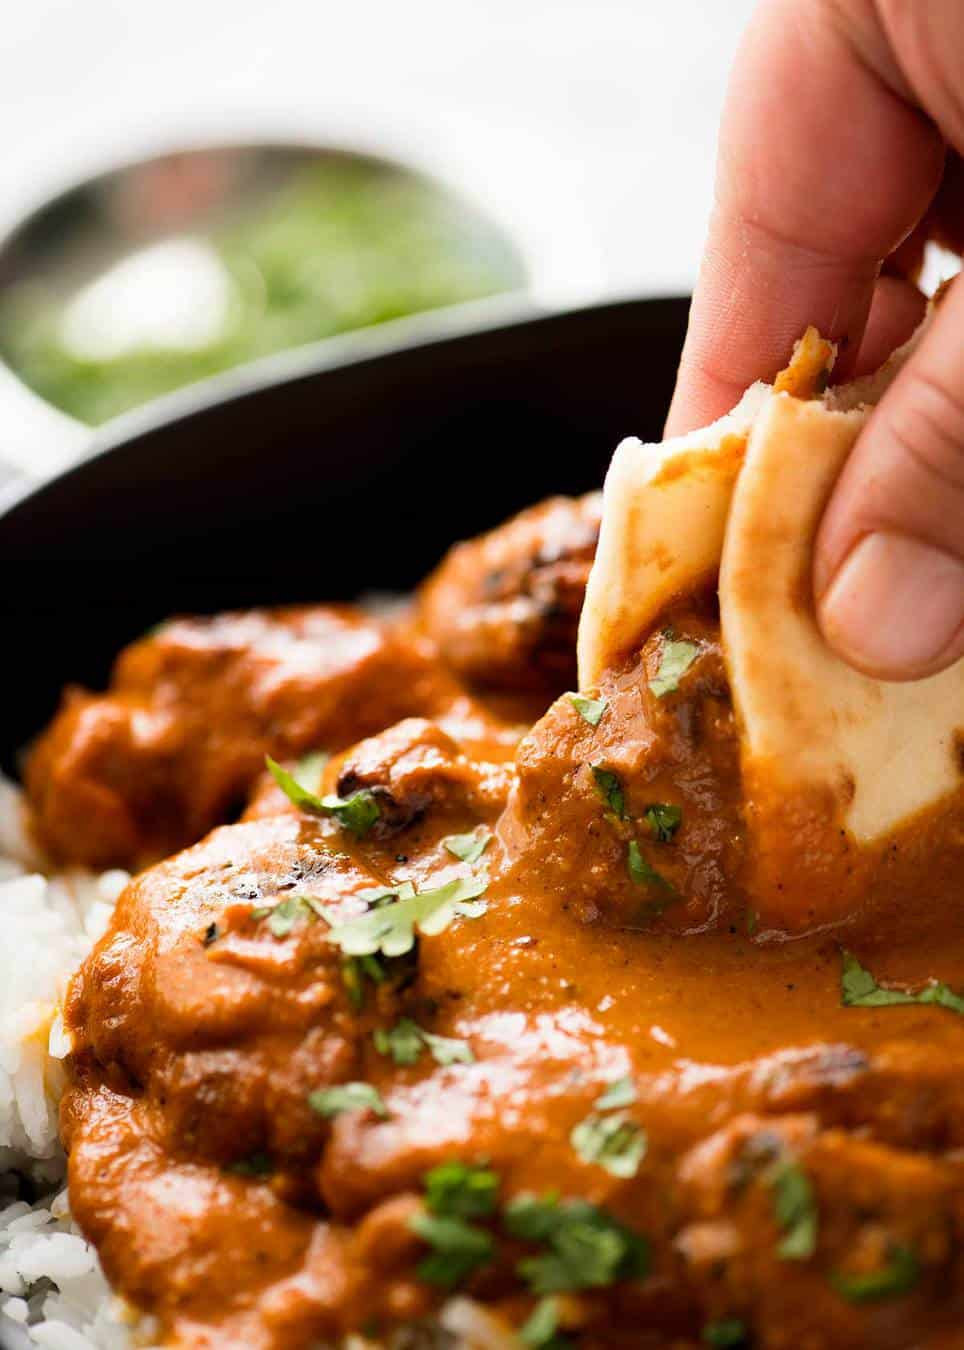 Close up of naan bread being used to scoop up some Chicken Tikka Masala.